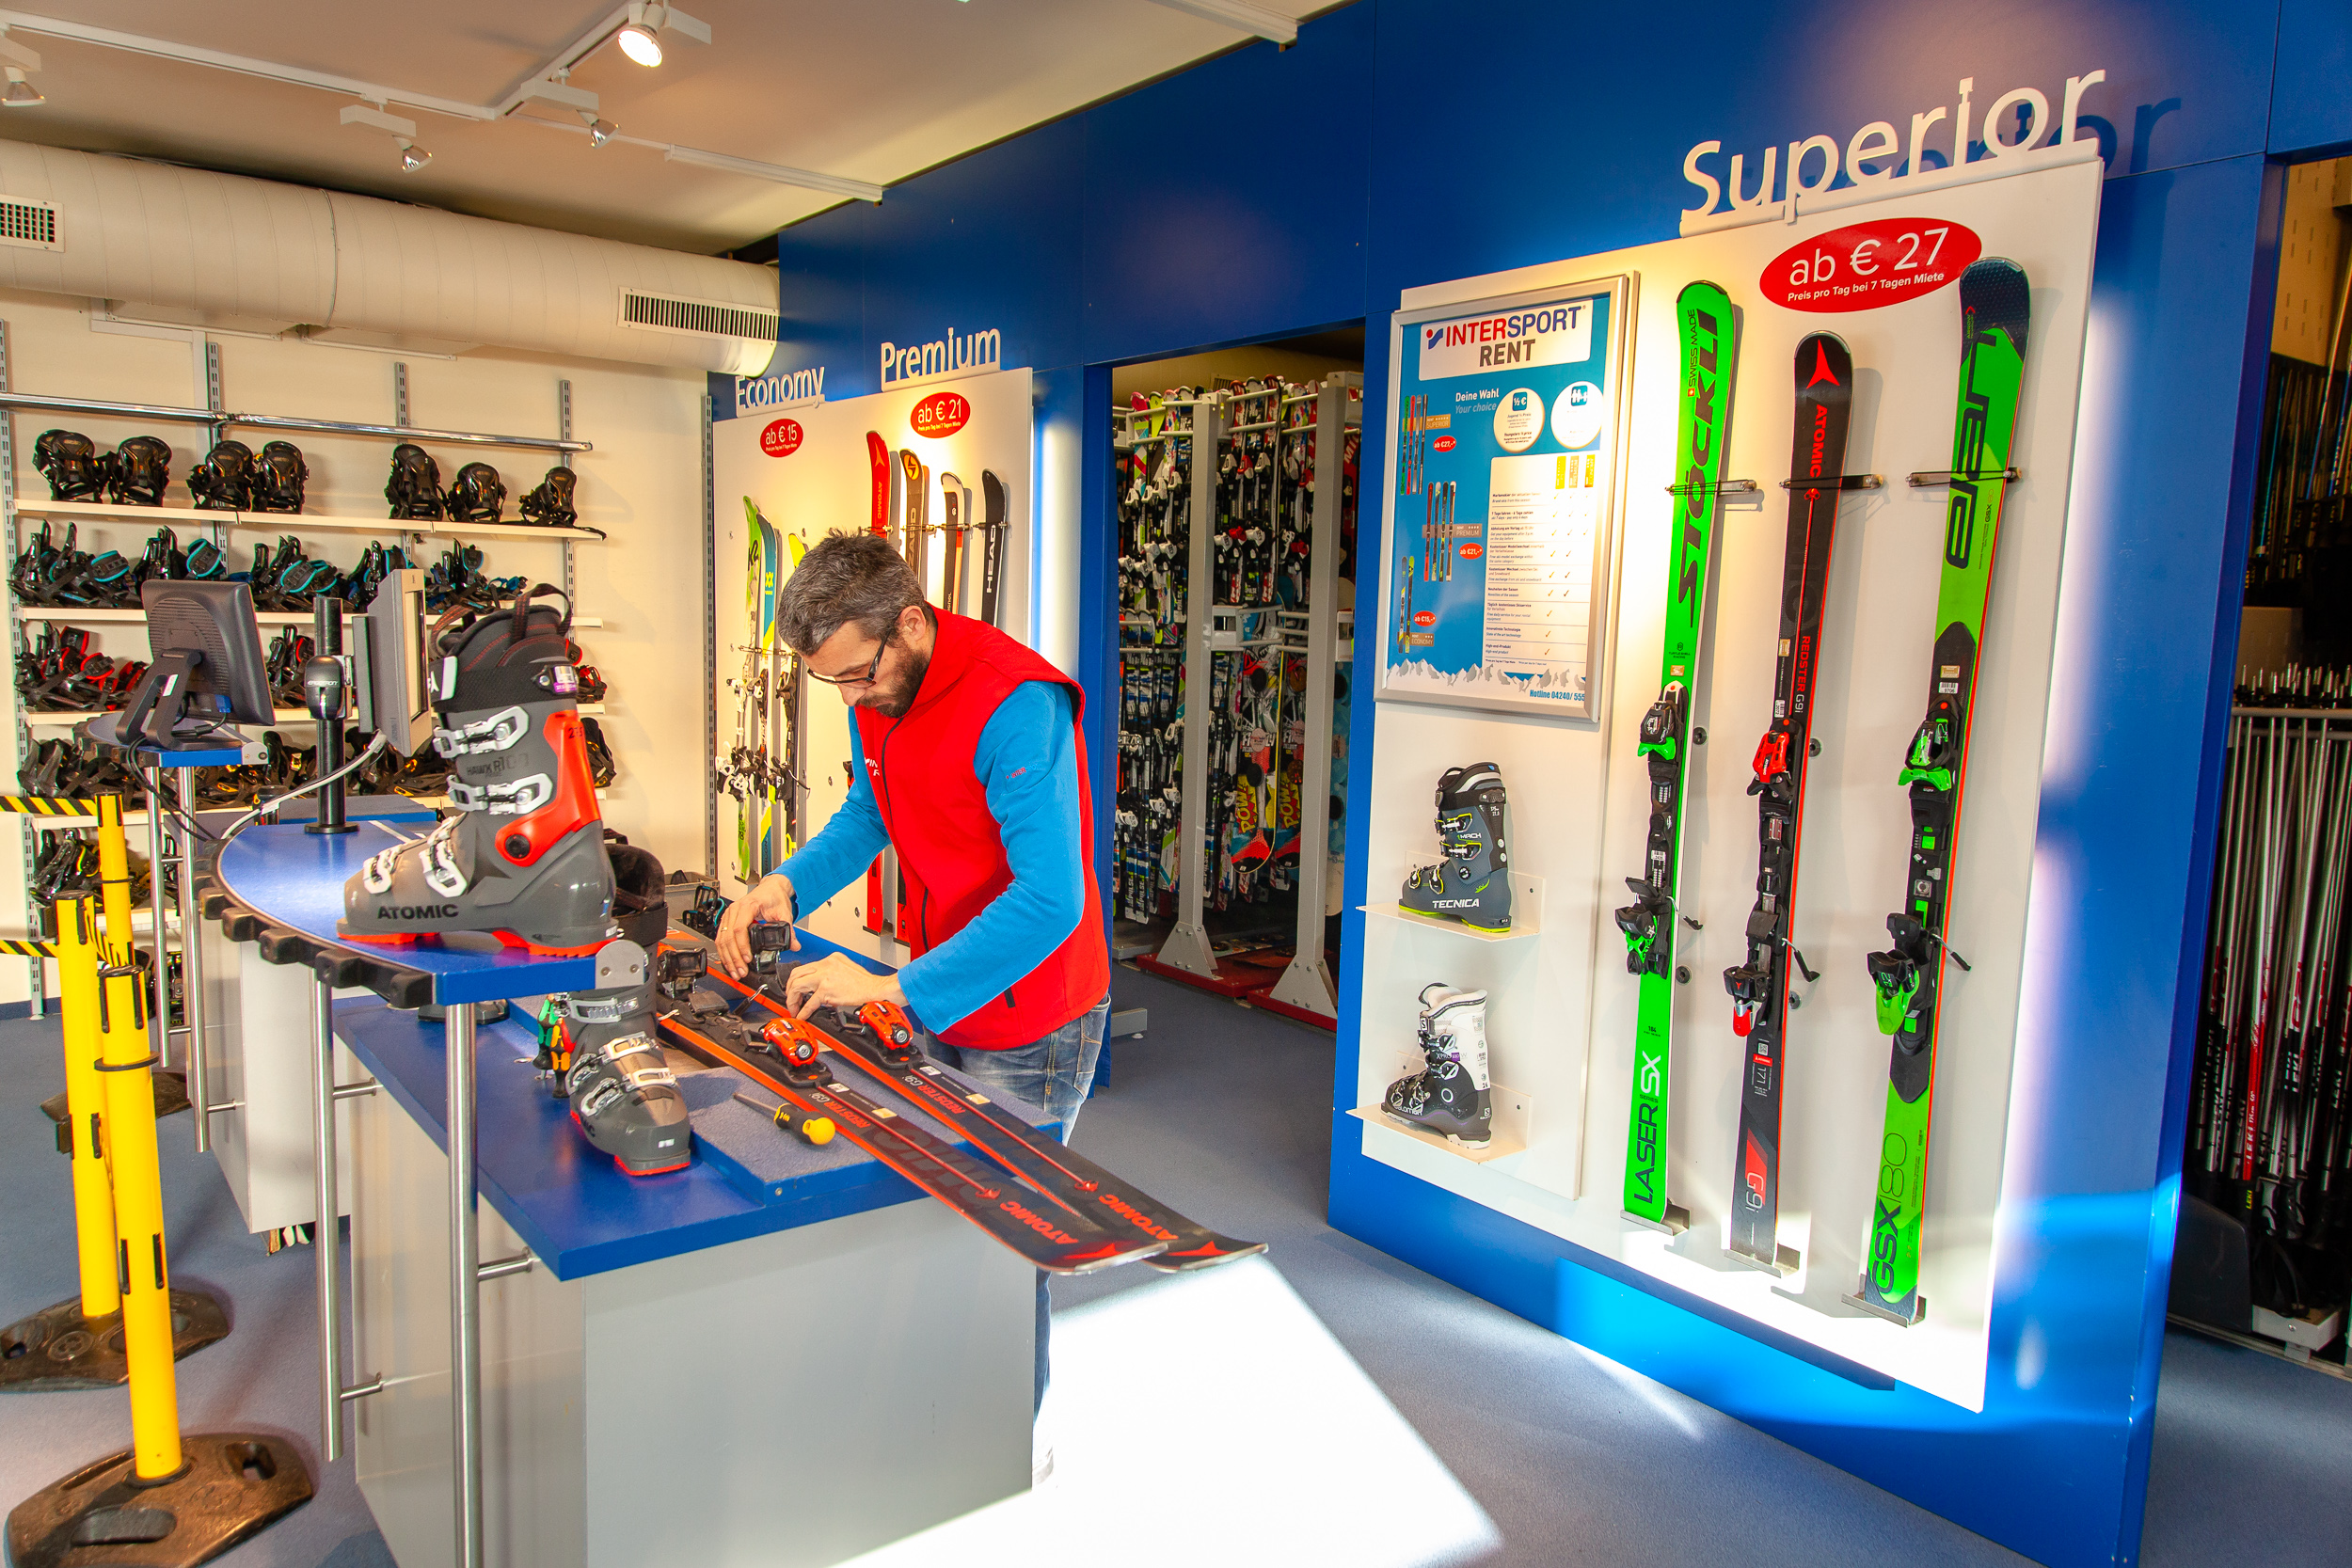 Skiverleih in Bad Kleinkirchheim - Intersport Rent